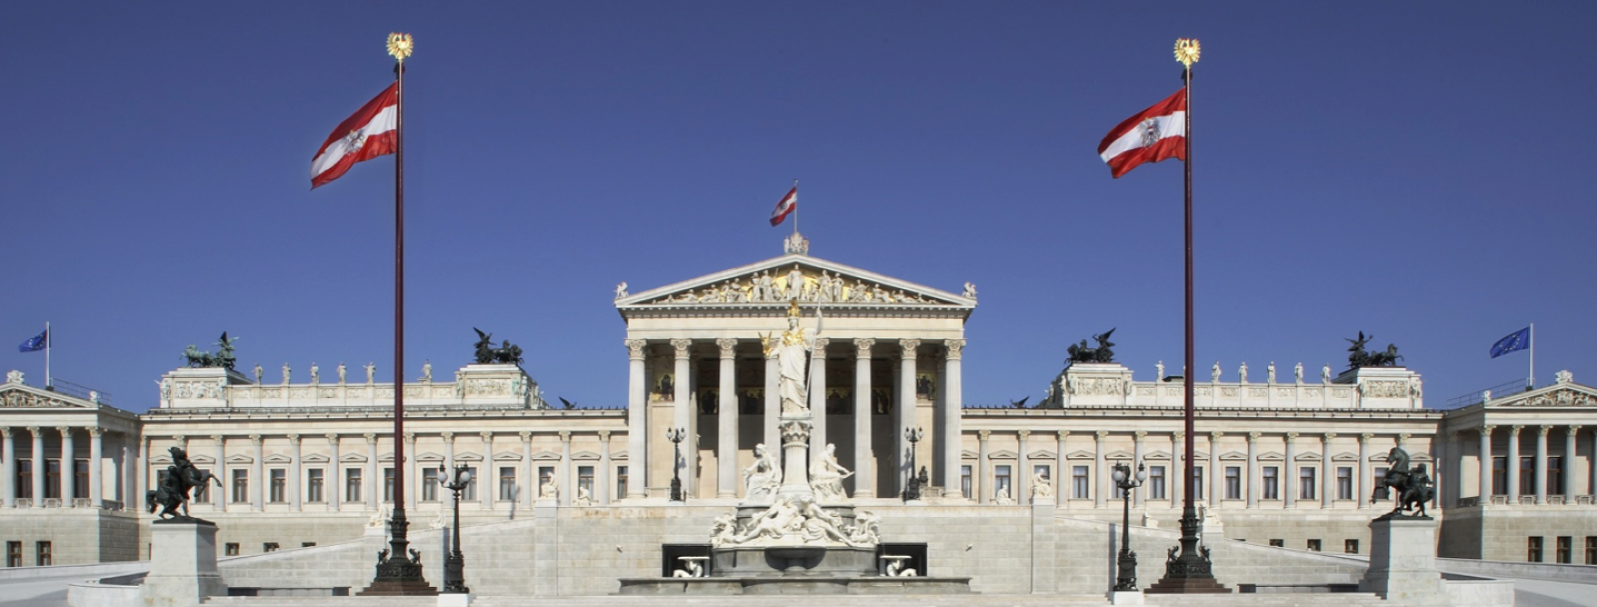 Save the Date: Pop Up SDN - Österreichisches Parlament